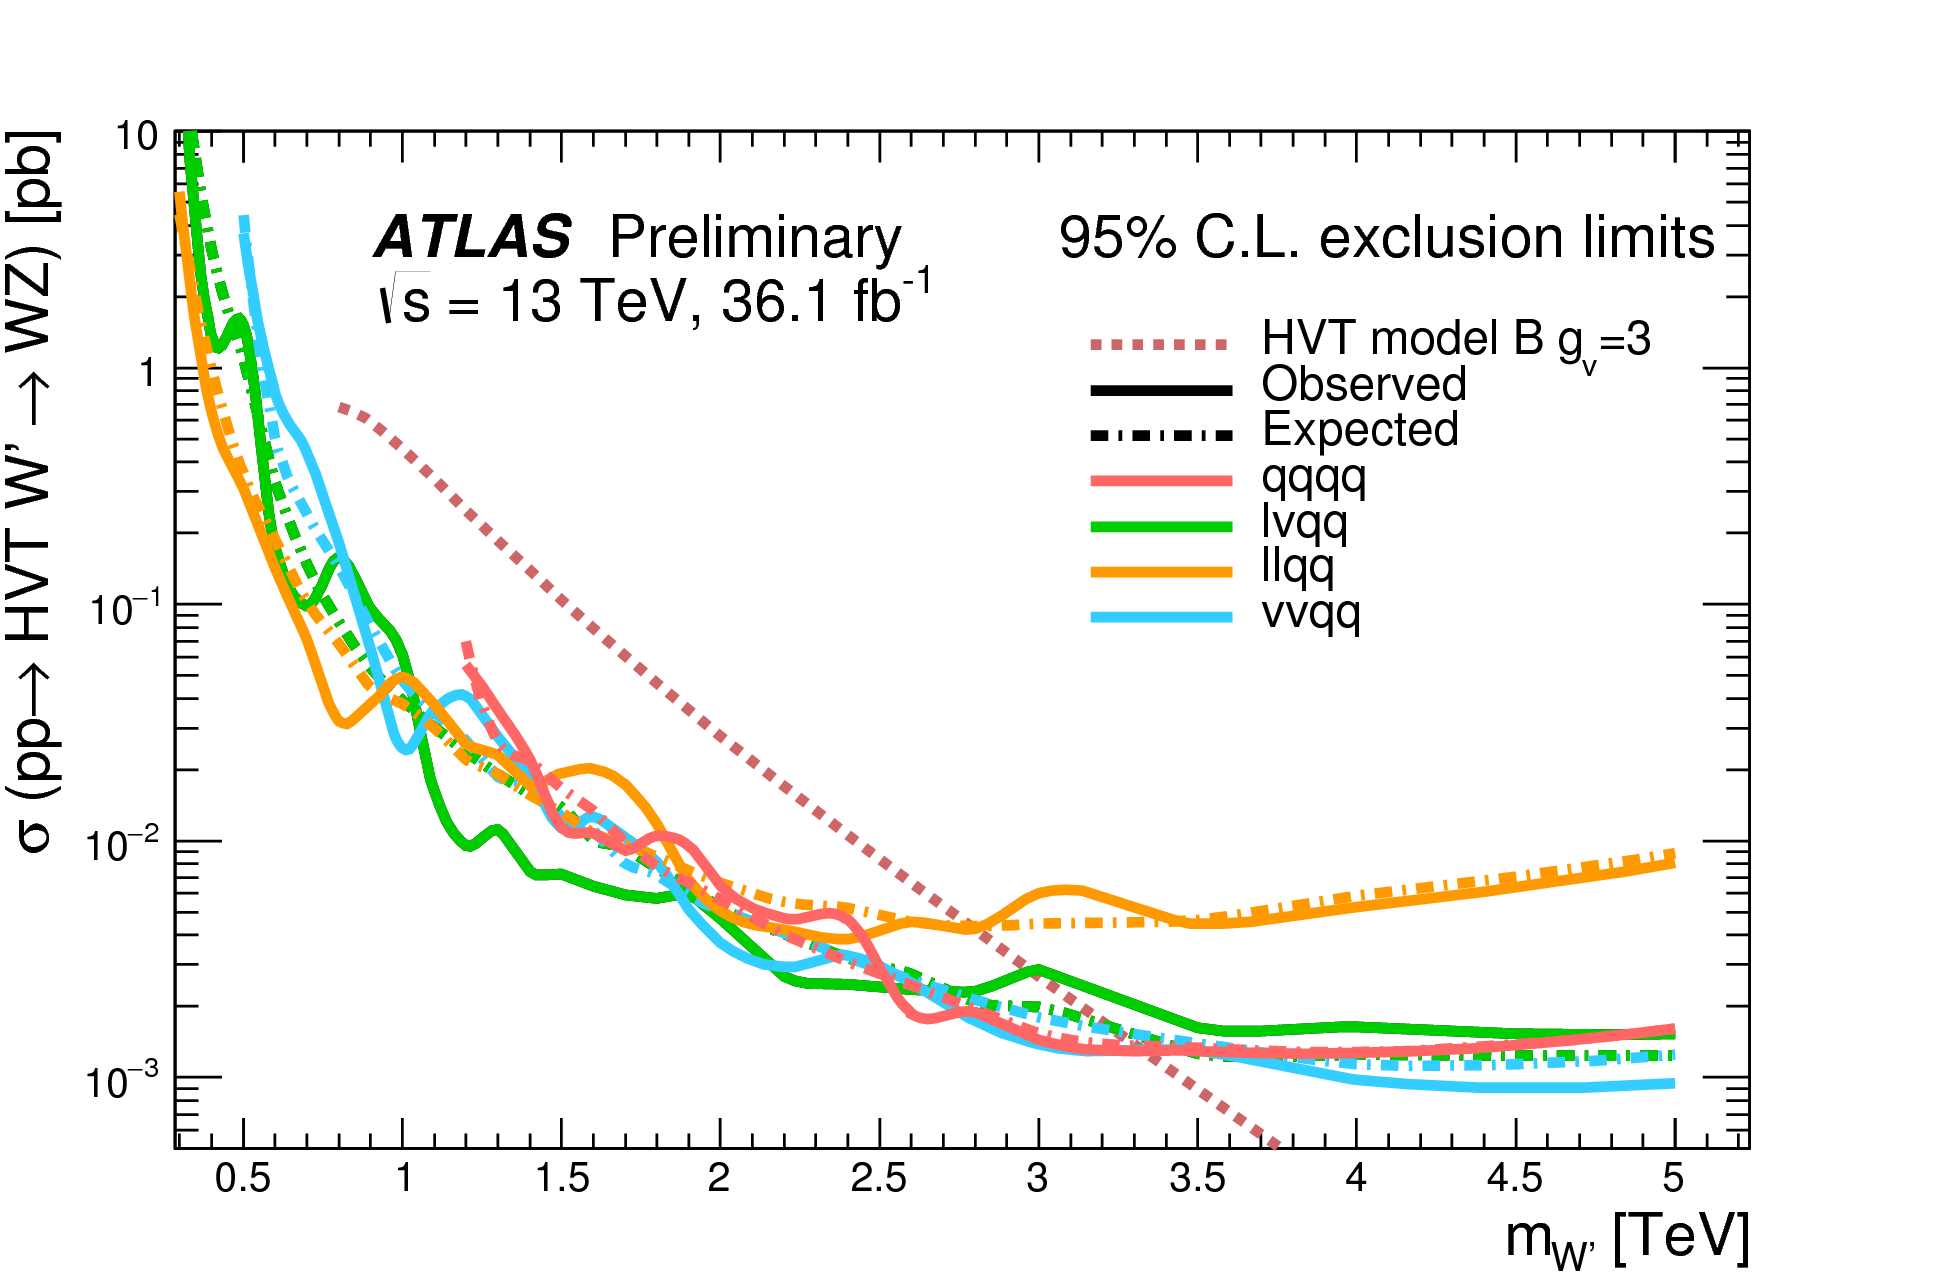 https://atlas.web.cern.ch/Atlas/GROUPS/PHYSICS/CombinedSummaryPlots/EXOTICS/ATLAS_Diboson_Summary/ATLAS_Diboson_Summary.png